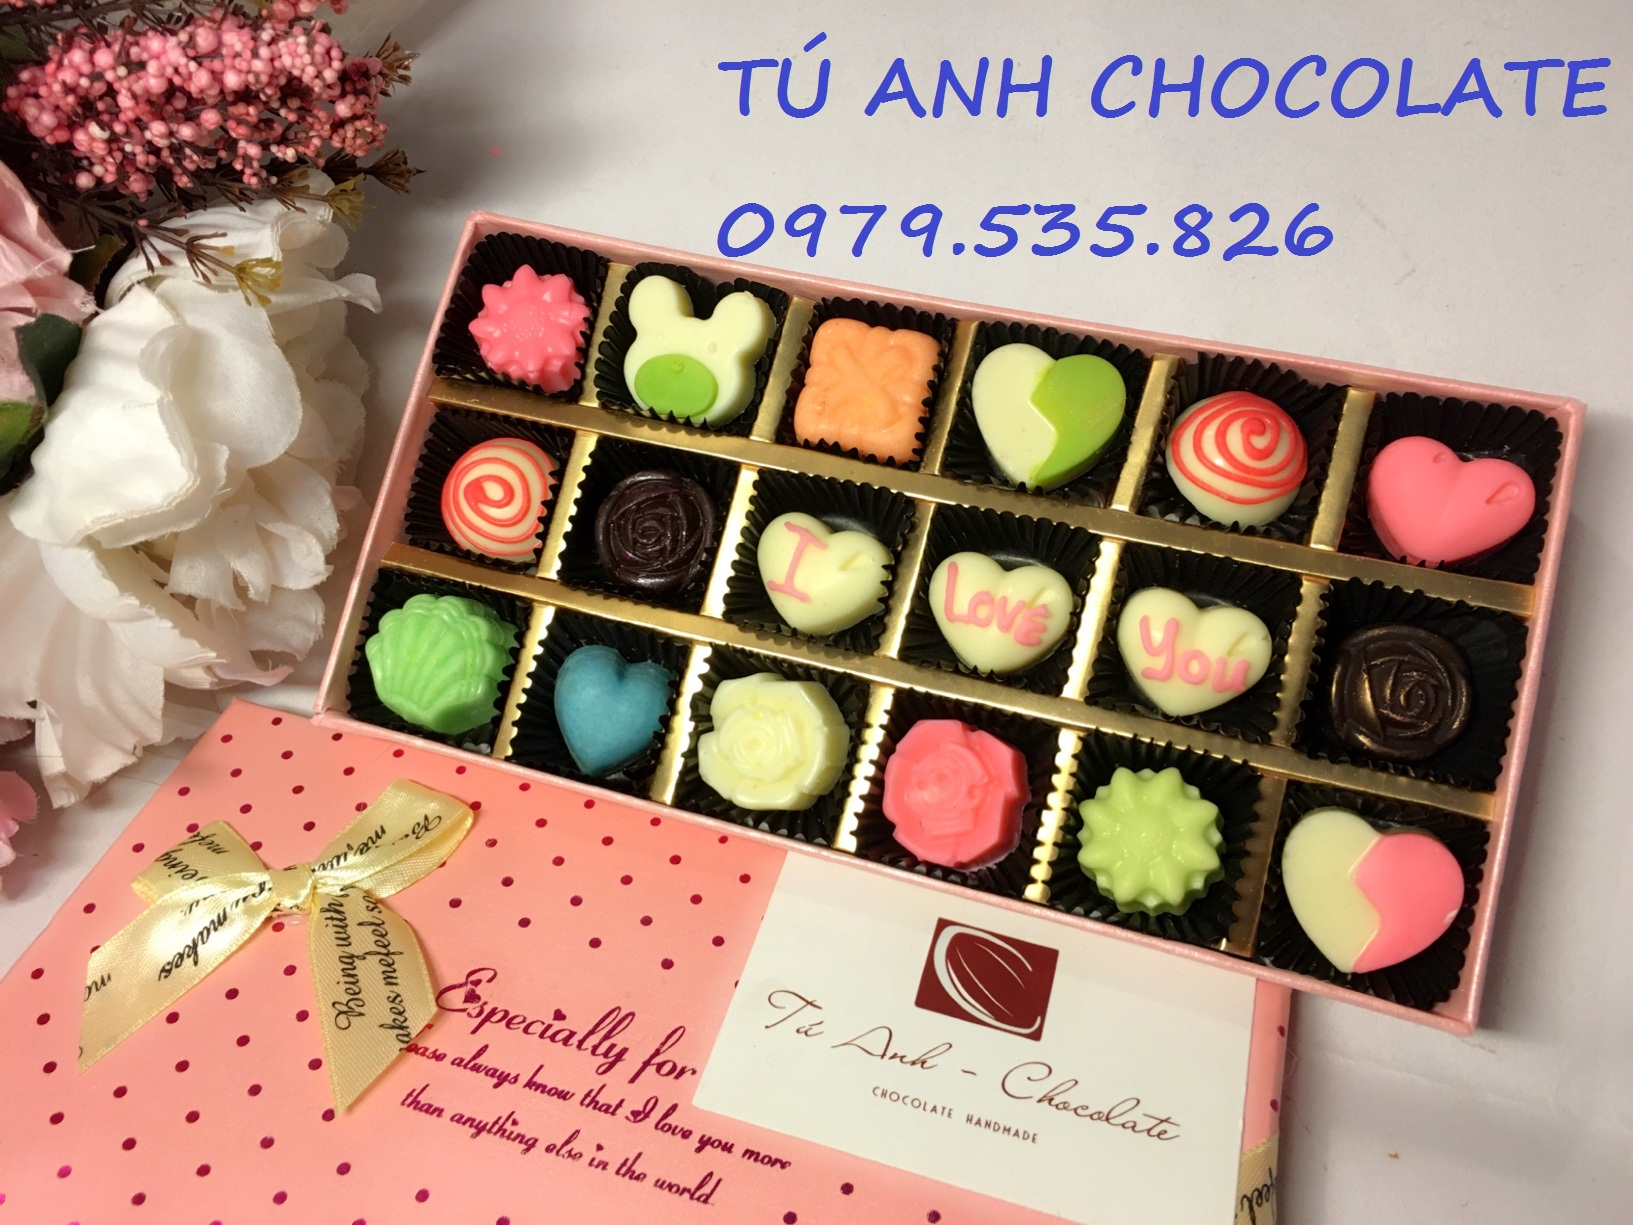 Chocolate valentine 2018